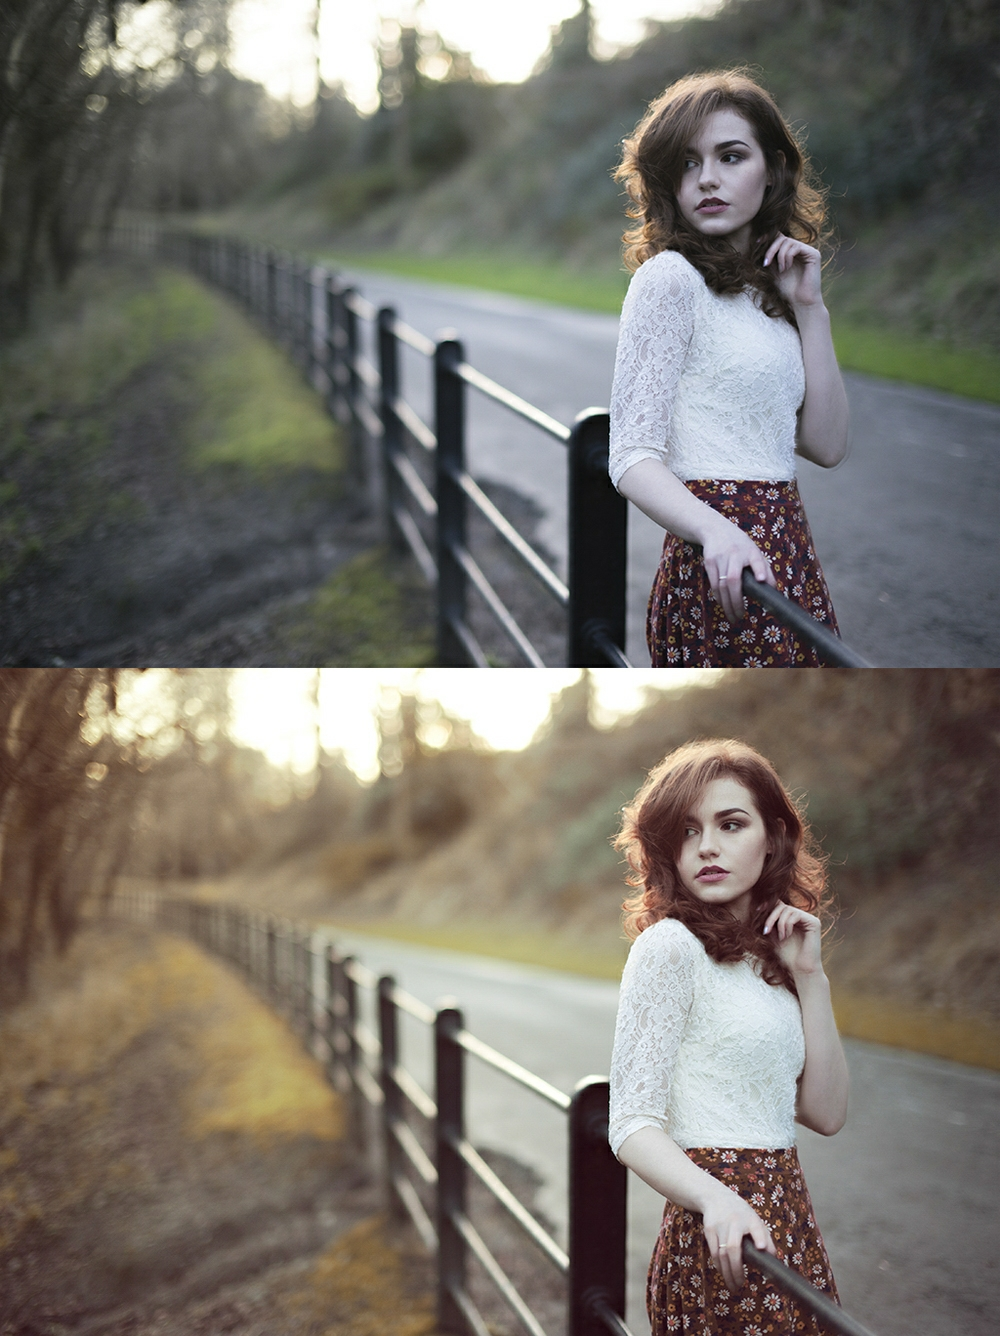 I will retouch your image as a professional photoeditor.